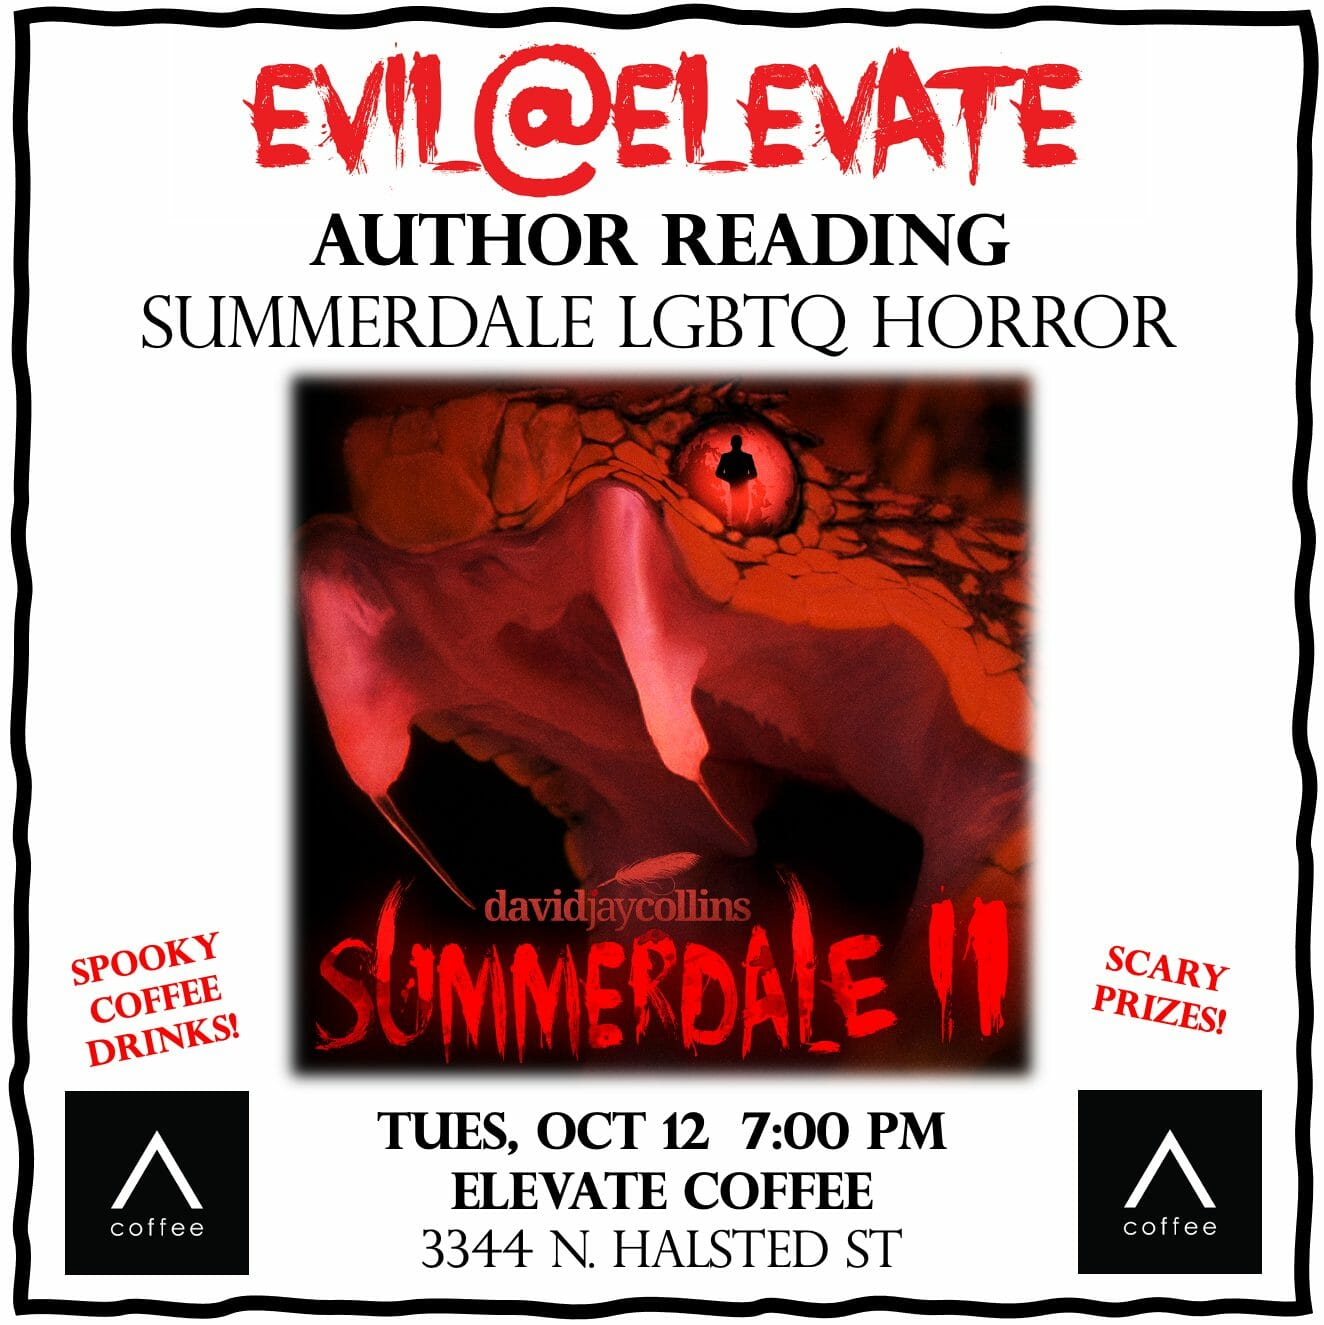 david jay collins at elevate coffee northalsted chicago summerdale lgbtq novel horror